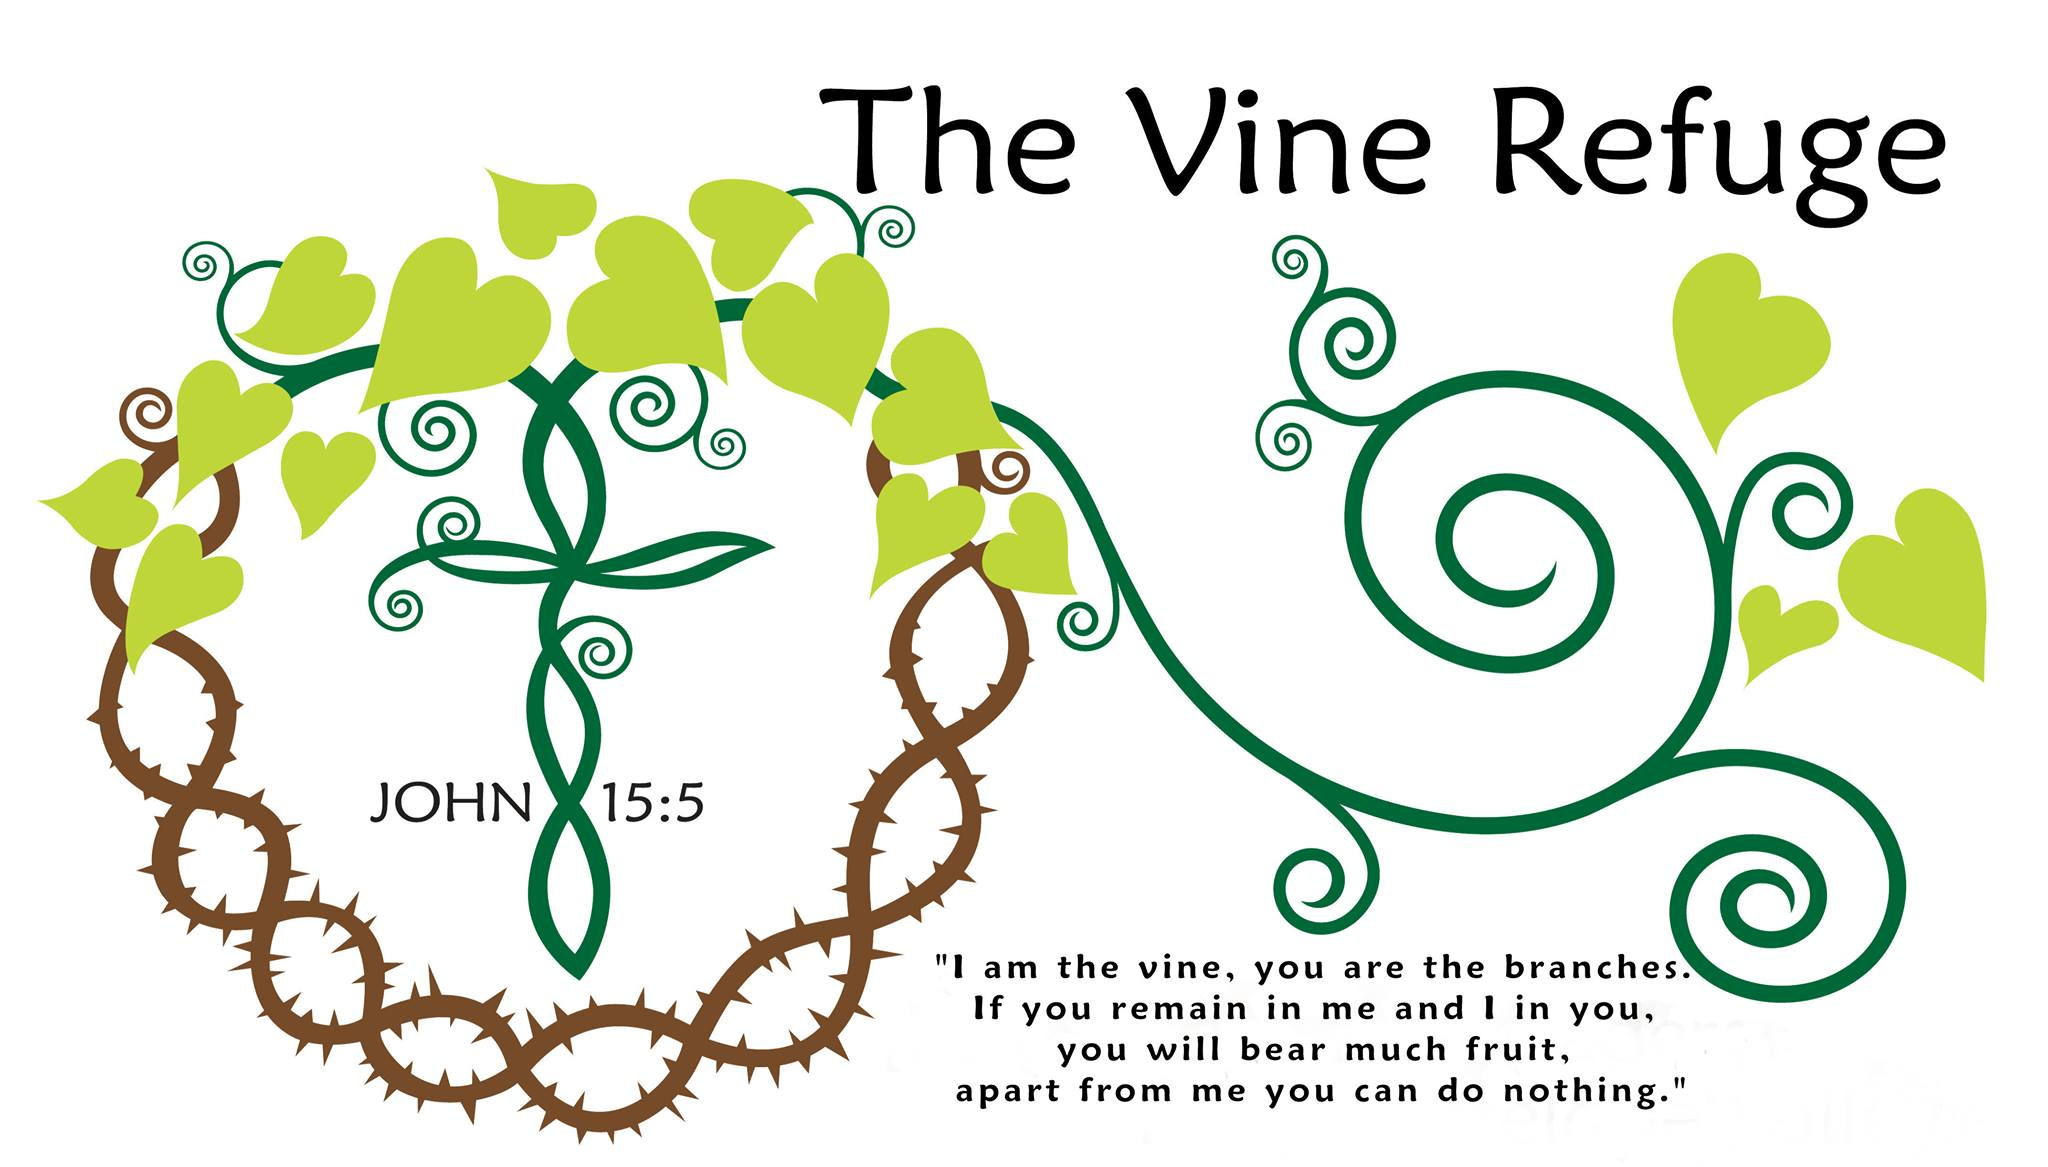 The Vine Refuge is committed to helping the valley restore future leaders (emancipated youth) by instilling into them morals, character, truth and the love of Jesus Christ, allowing families to stay together and form a bond built on trust, truth and the love of Jesus Christ.